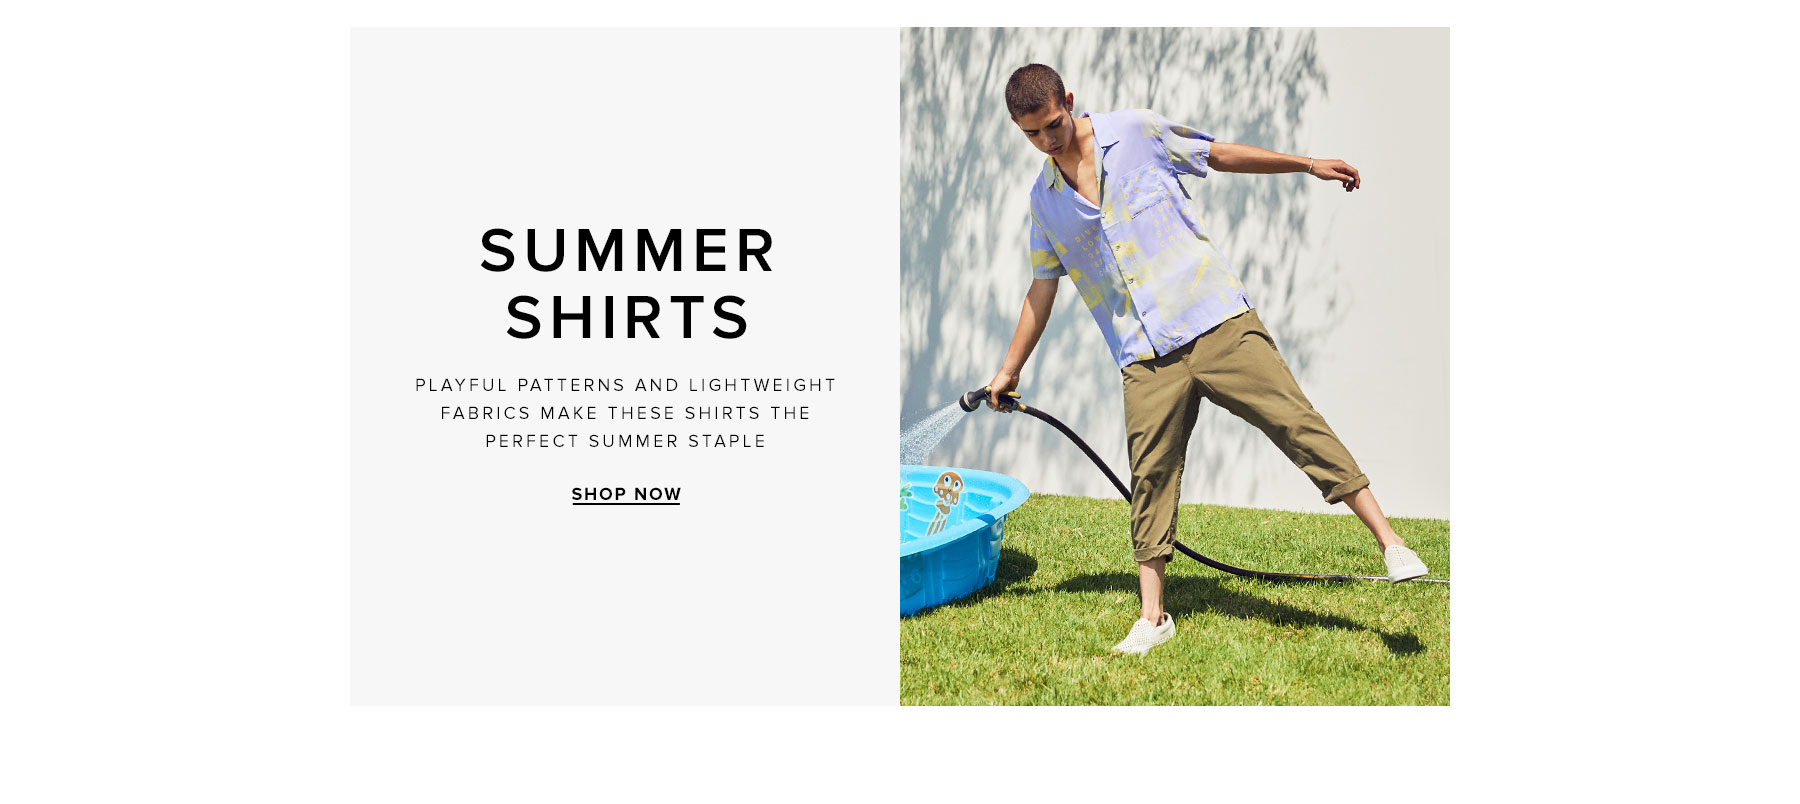 Summer Shirts. Playful patterns and lightweight fabrics make these shirts the perfect summer staple. Shop now.